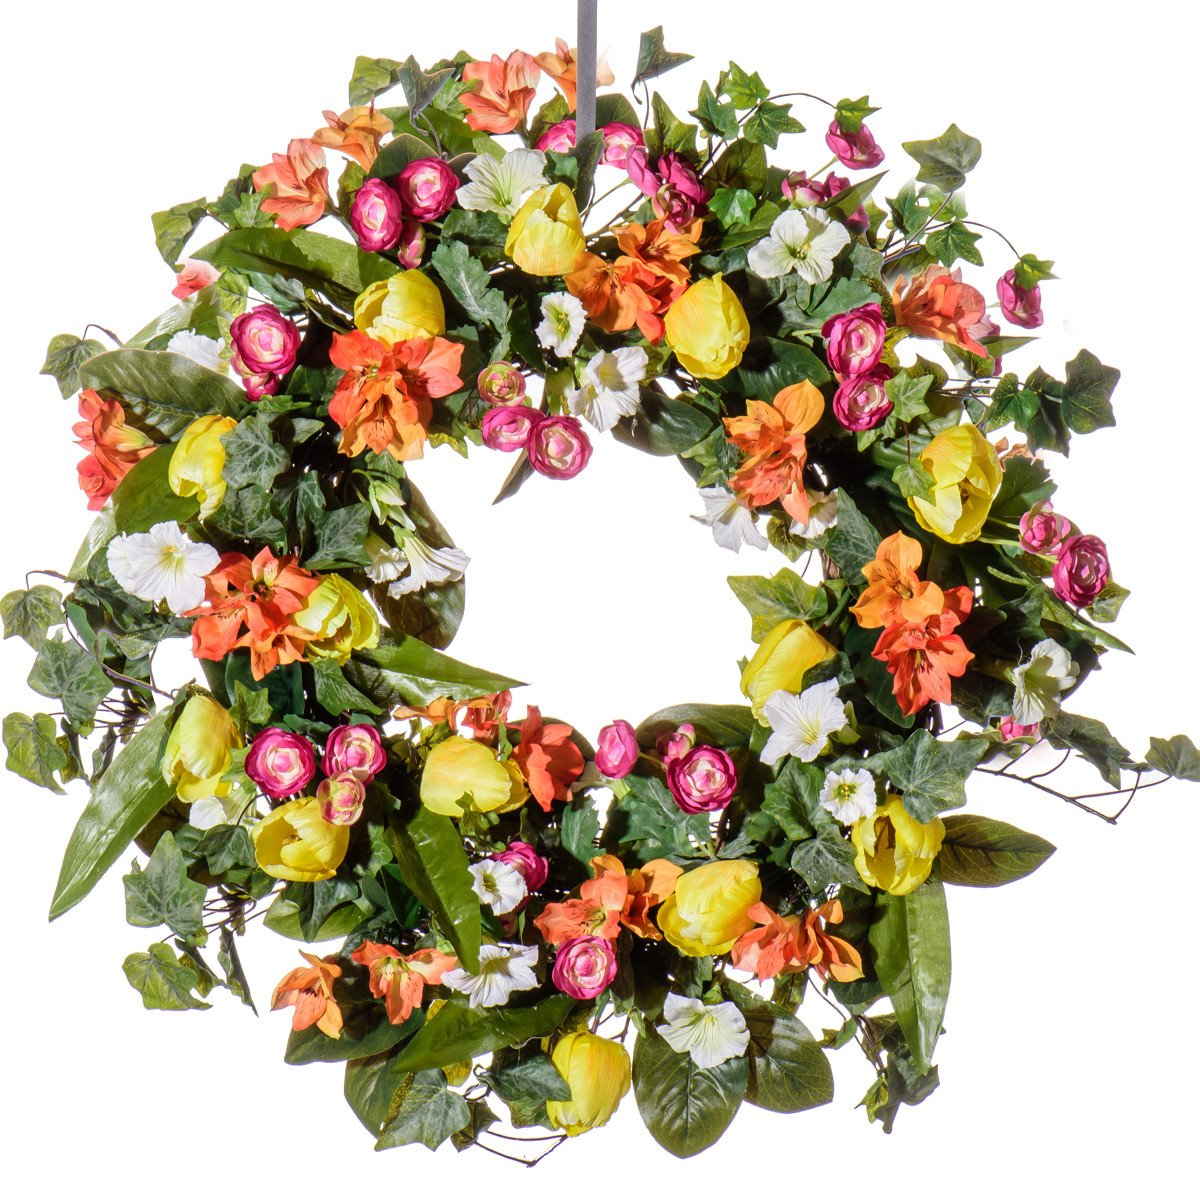 Tulip, Petunia & Ranunculus Silk Wreath (SW921) - Spring Wreath, Summer Wreath, Everyday Wreath (26 inch)